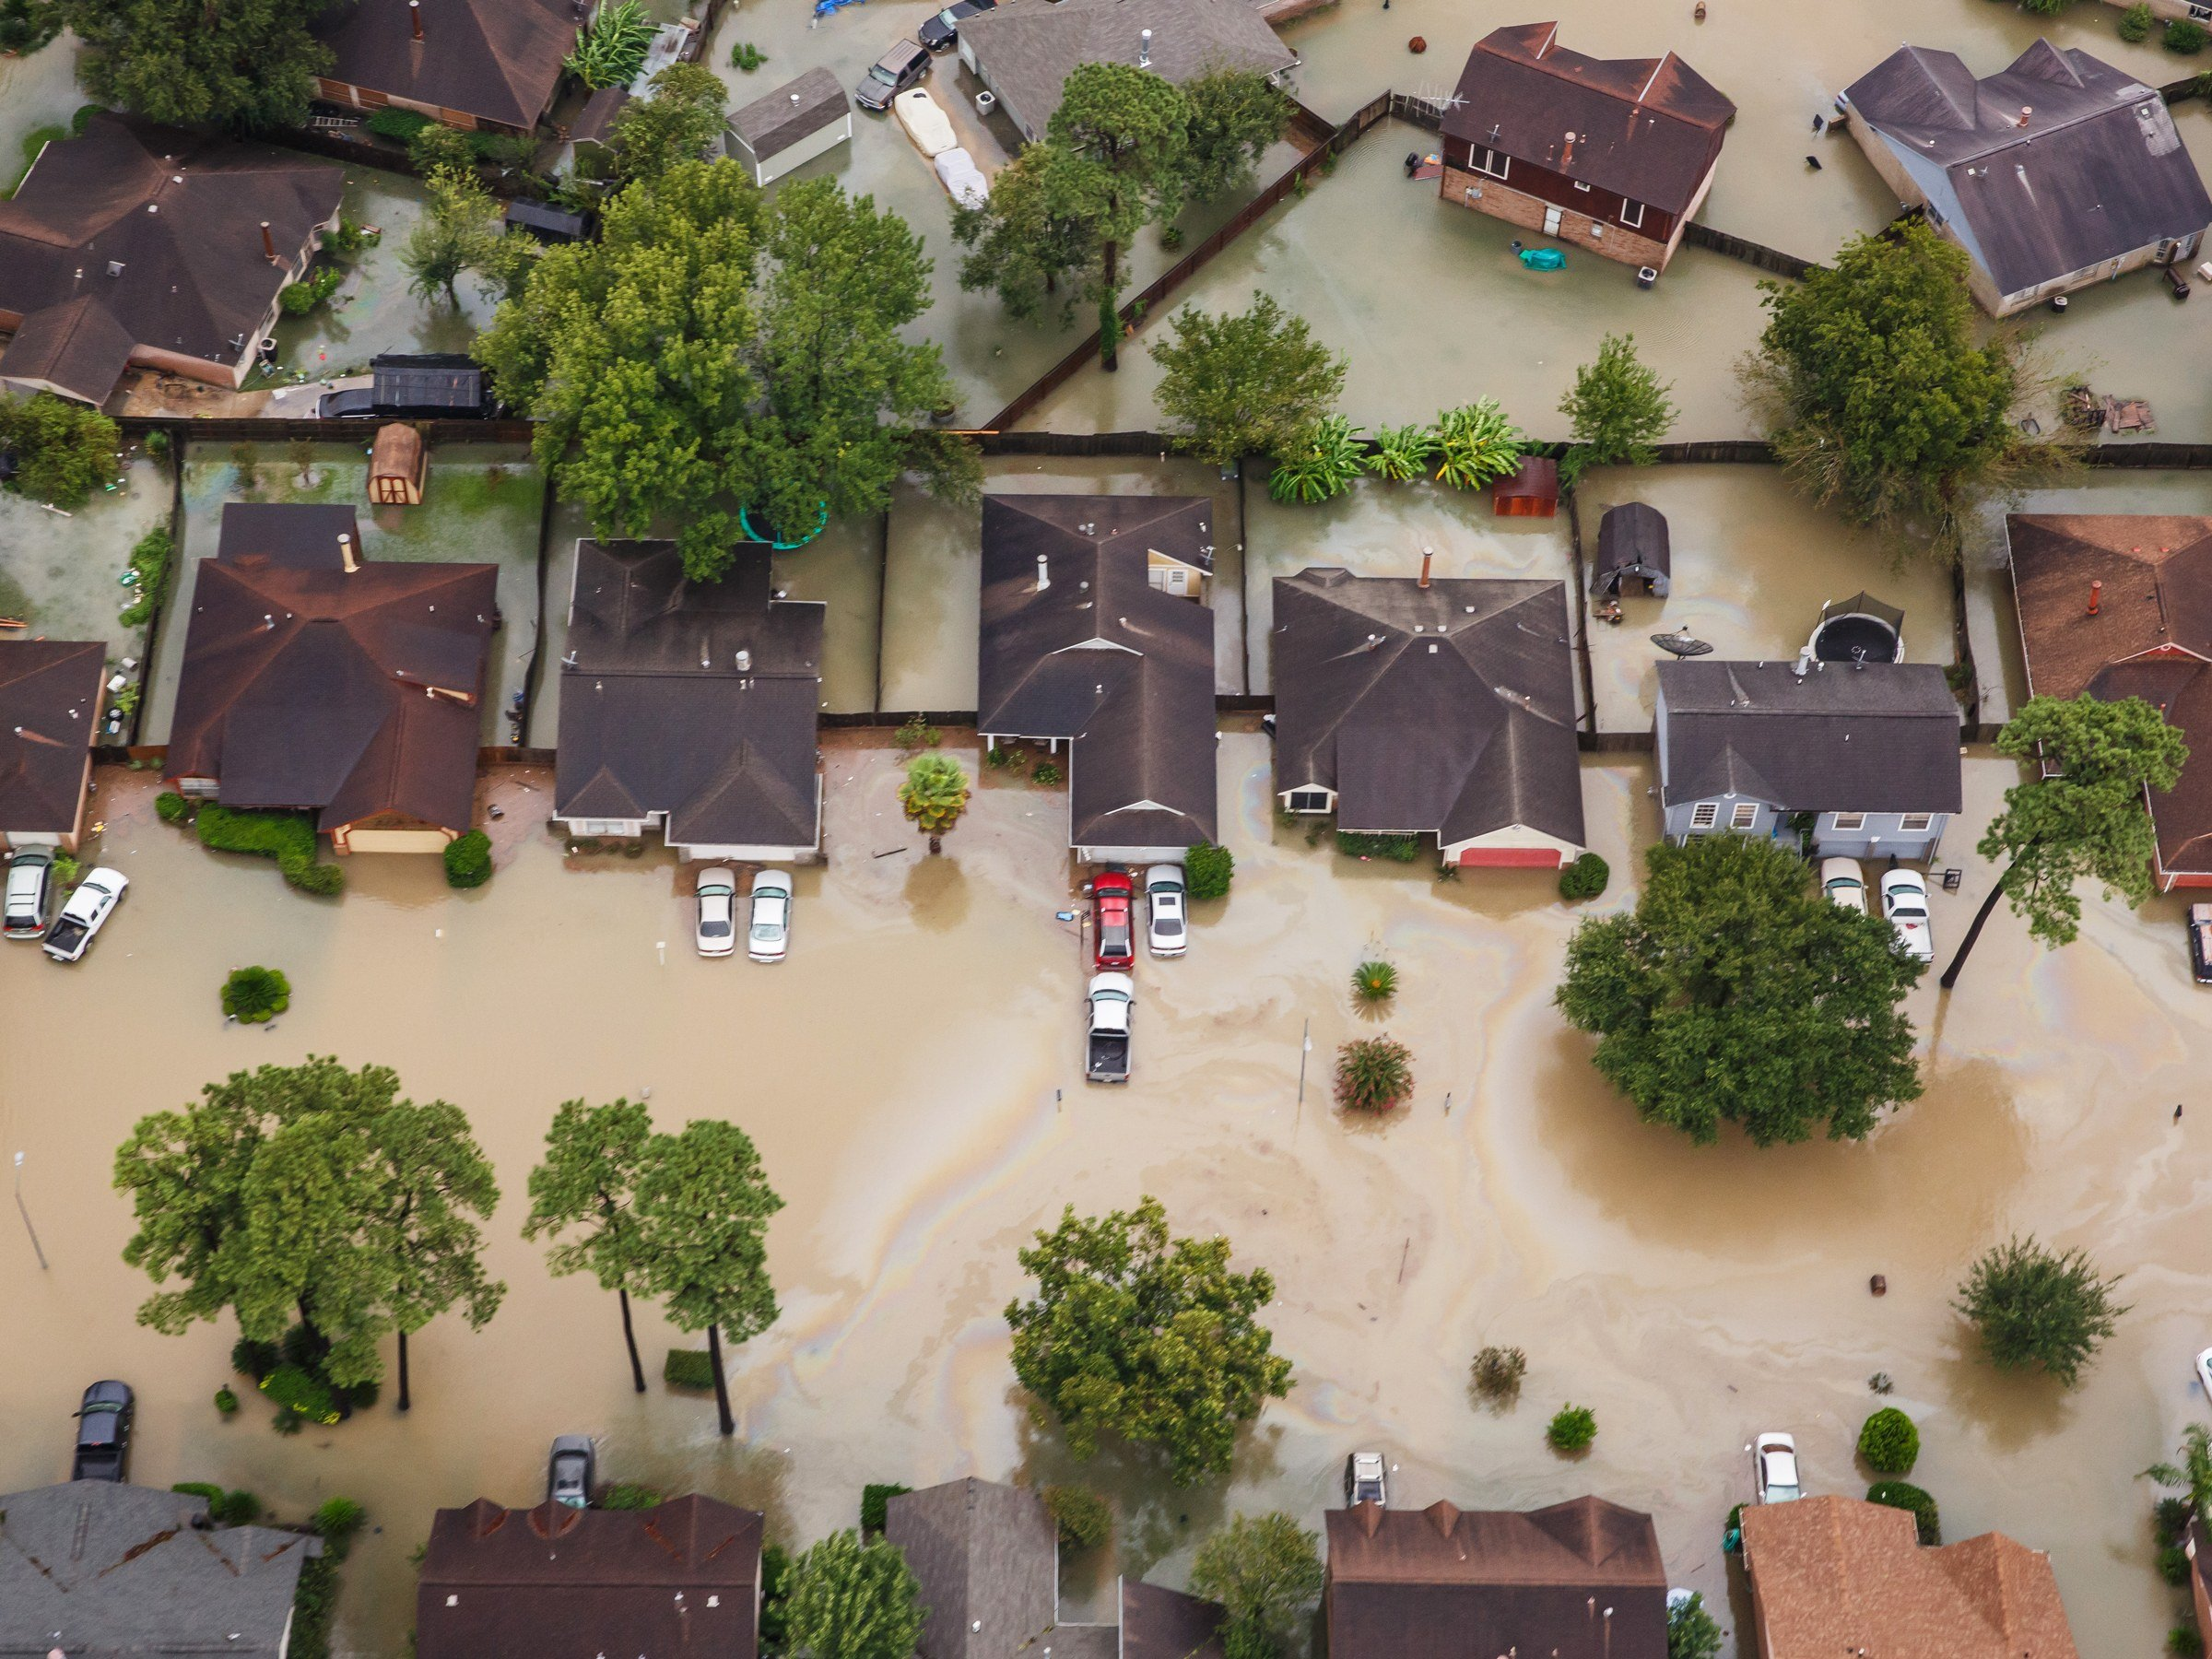 What Harvey Taught Us About Using Drones in Disasters